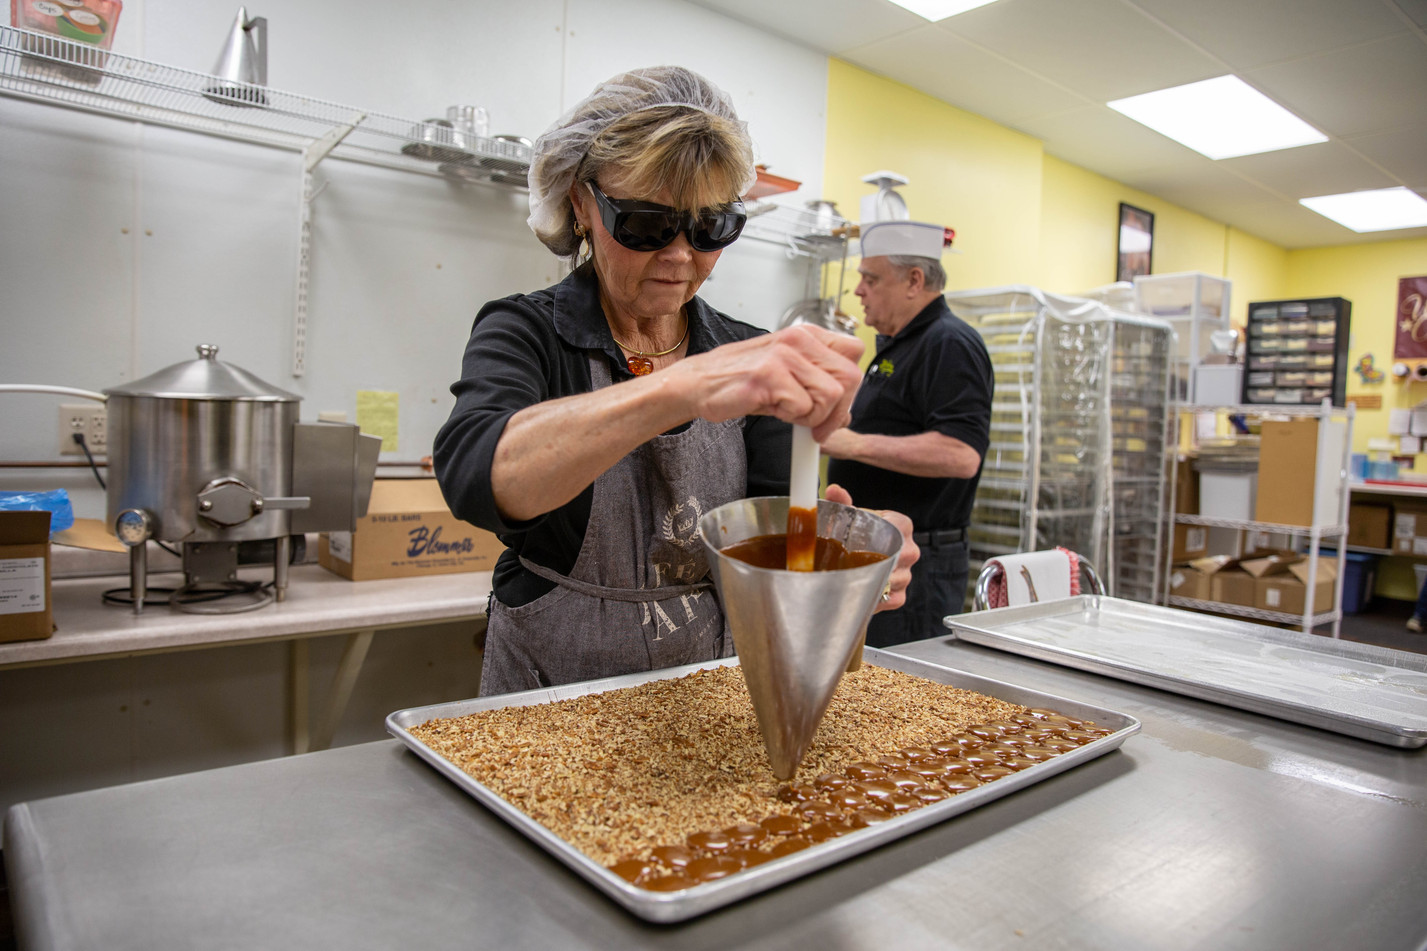 """Watertown Confectionery's Vickie Marotz funnels globs of freshly-made caramel onto a tray of crushed pecans while making a batch of turtles on Wednesday, Jan. 23, while her husband Mike prepares more caramel. The confectionery sells dozens of different chocolate candies, including dark chocolate caramels with sea salt, milk or dark chocolate Mint Meltaways, chocolate-covered peanut butter cups, milk and dark chocolate turtles and much more. """"We have such an array of chocolates,"""" Marotz said. """"I'm never bored because there's always something to do."""" ©2019 Grace Ramey"""